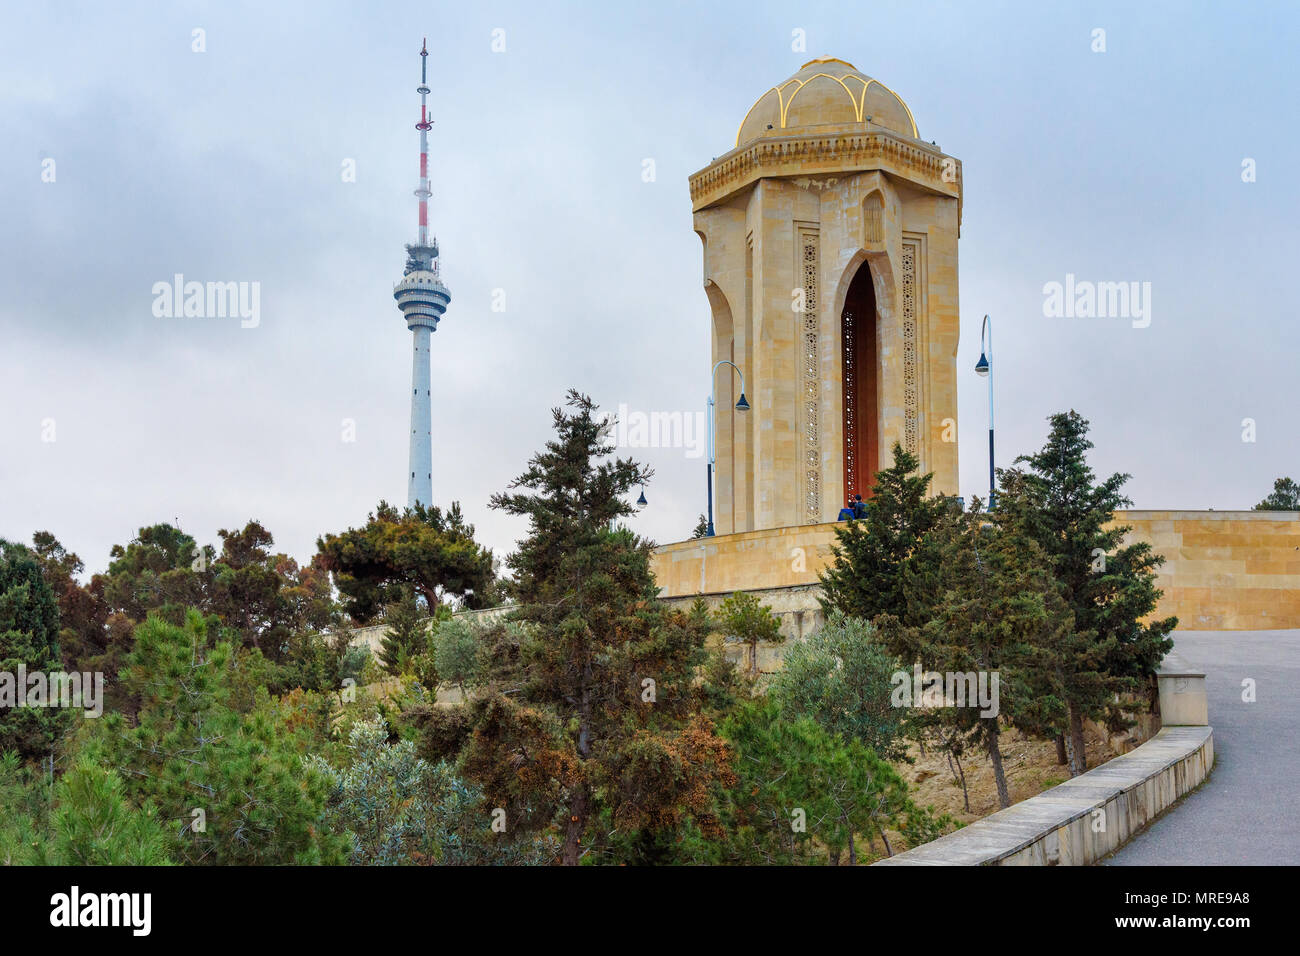 Baku, Azerbaijan - March 11, 2018: Shahidlar Monument or Eternal flame Monument on Martyrs' Lane. And Tv tower in the evening Stock Photo